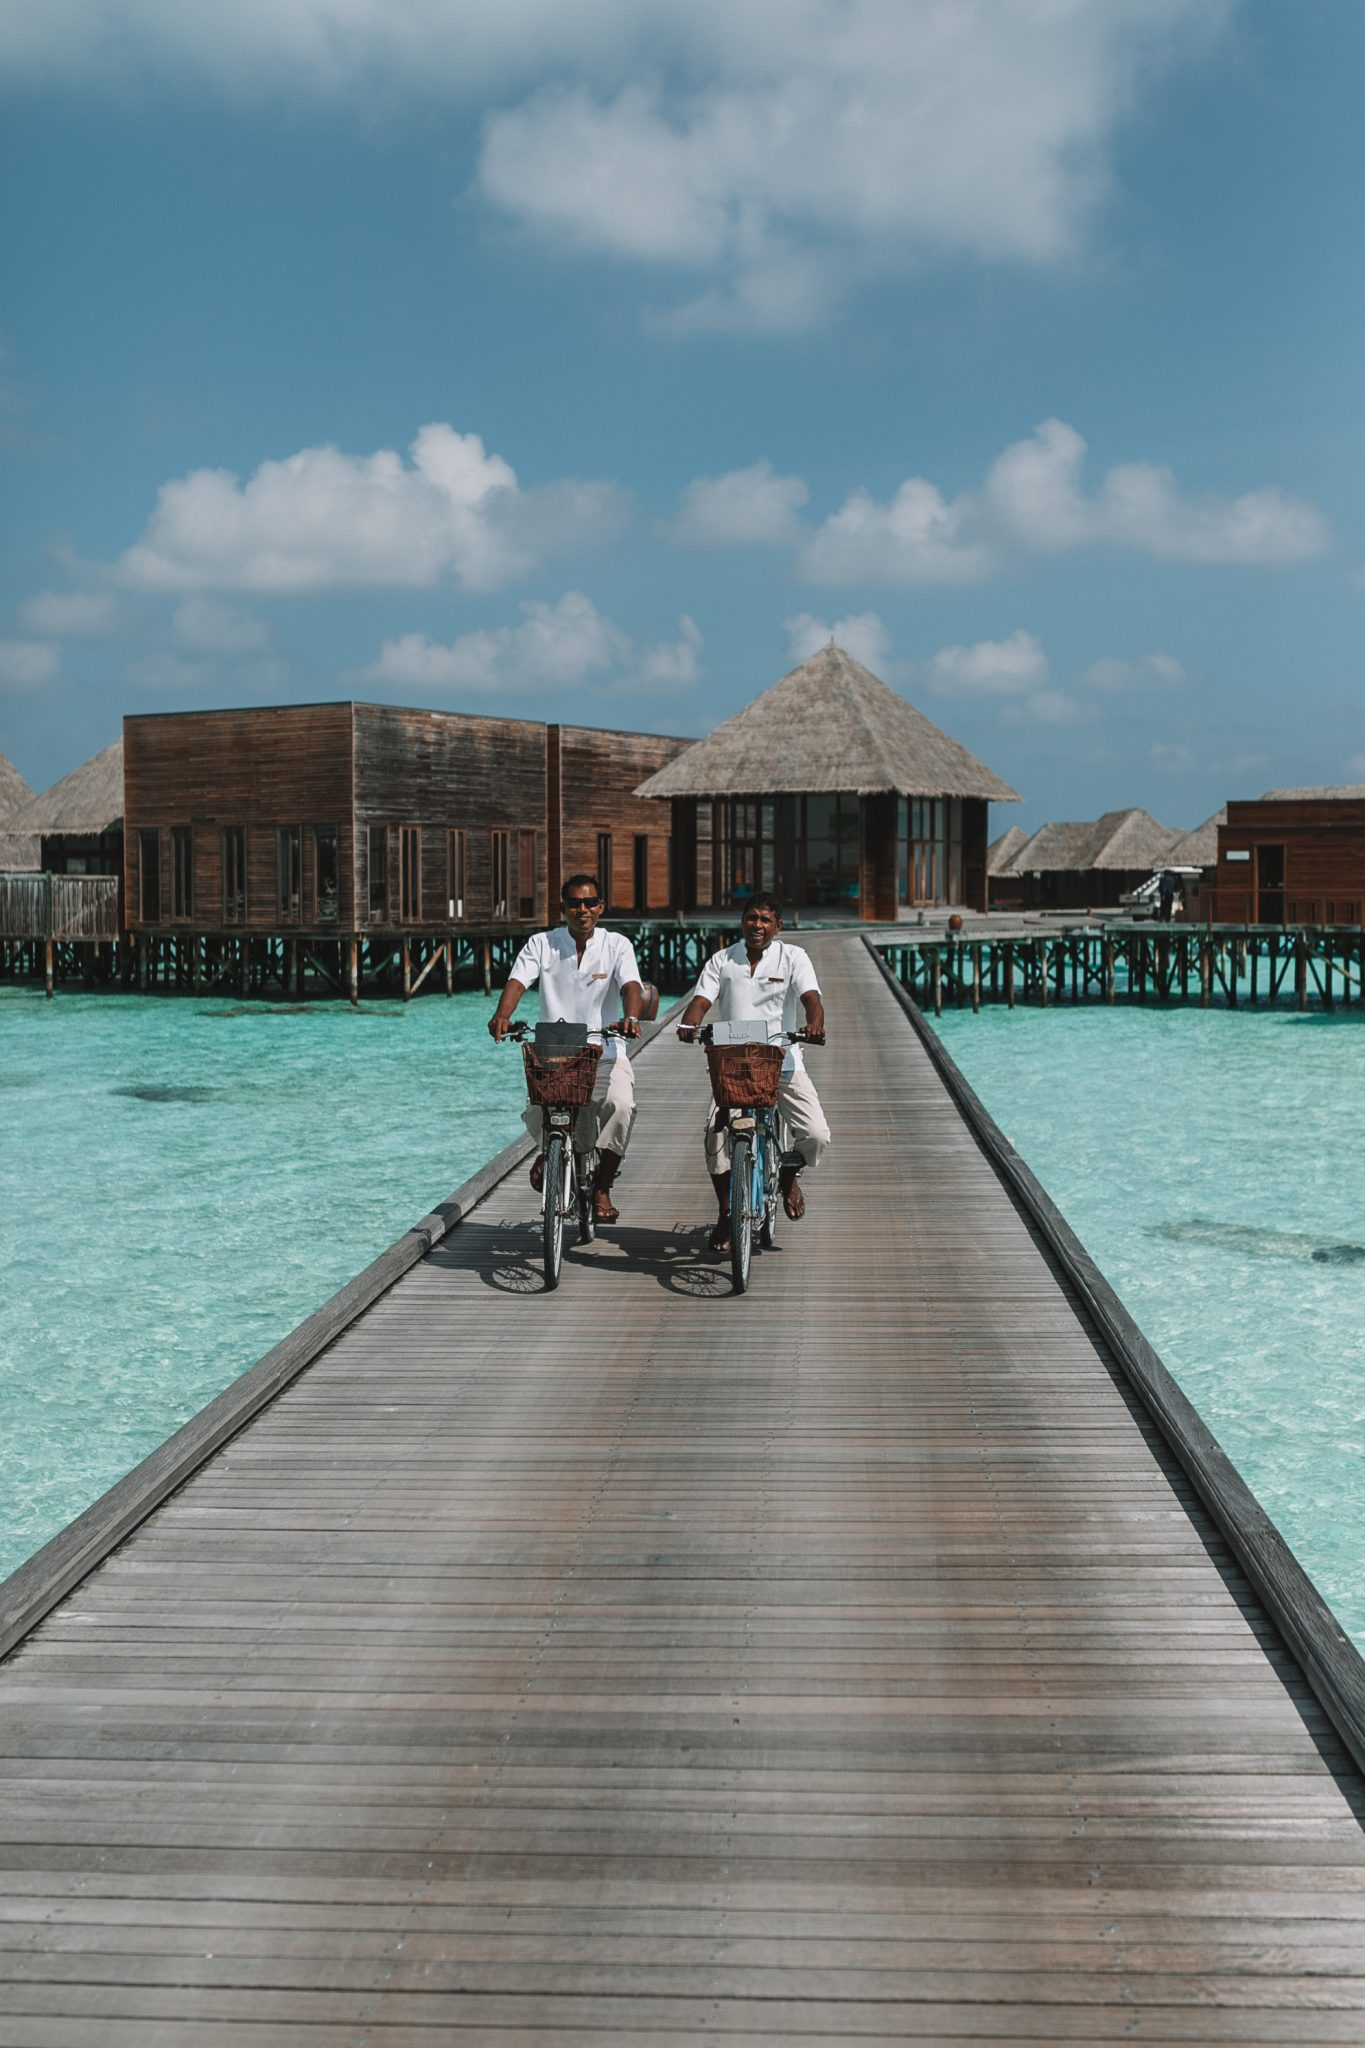 Two men riding bikes on a boardwalk in the Maldives